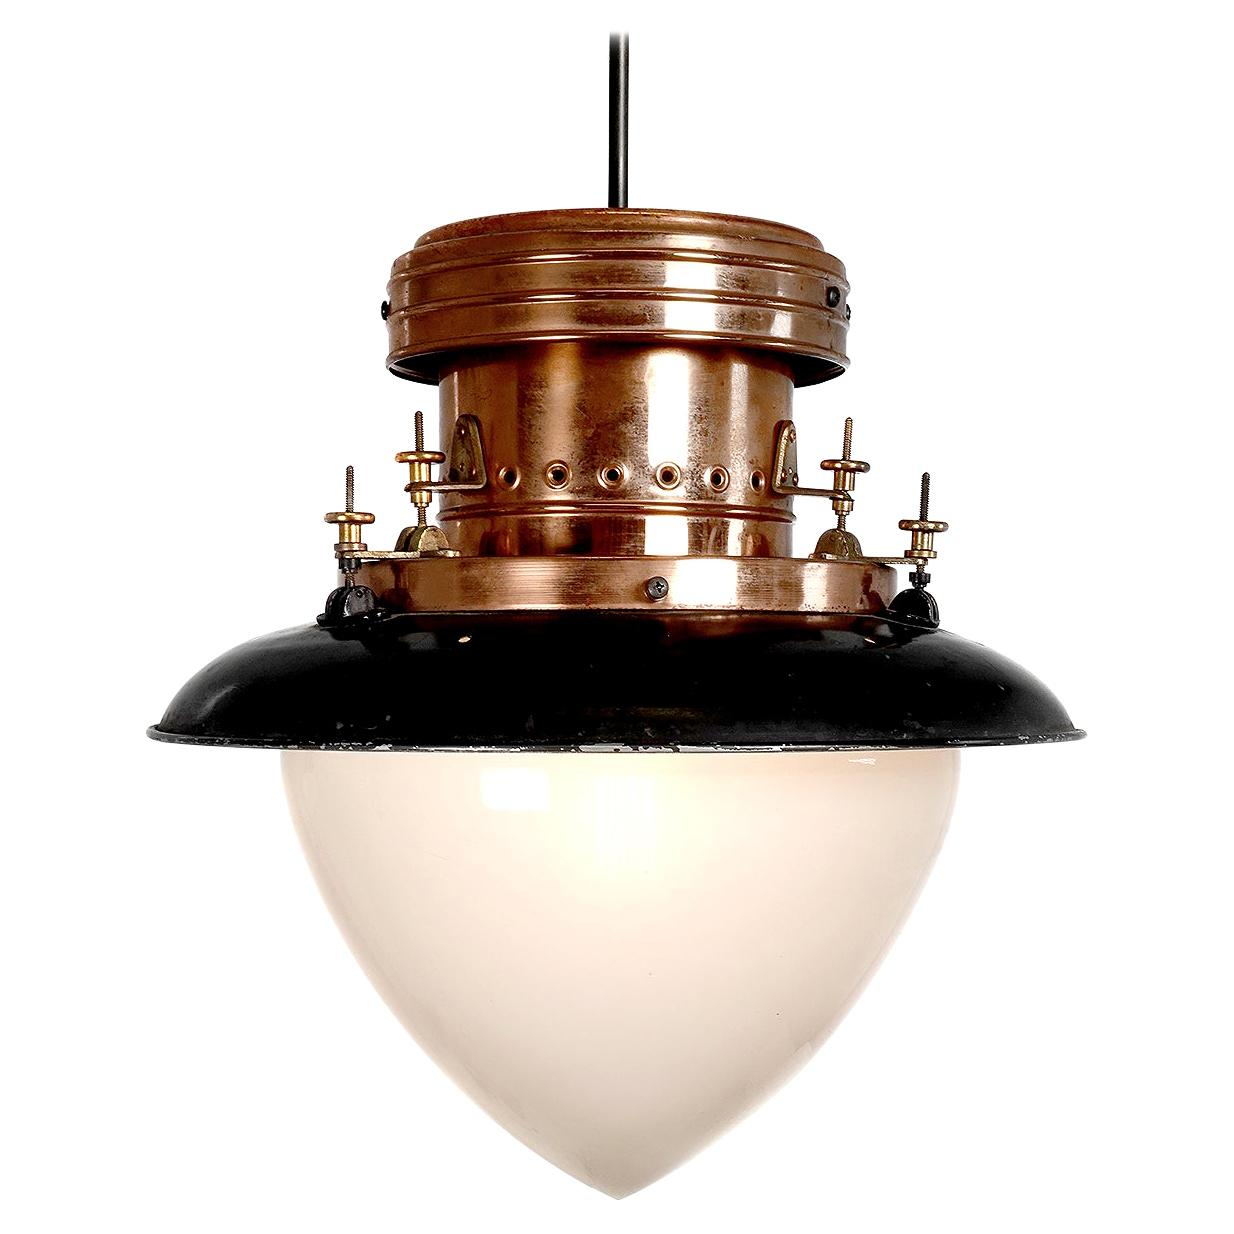 Unique Gas Lamp in Polished Copper and Large Acorn Shade